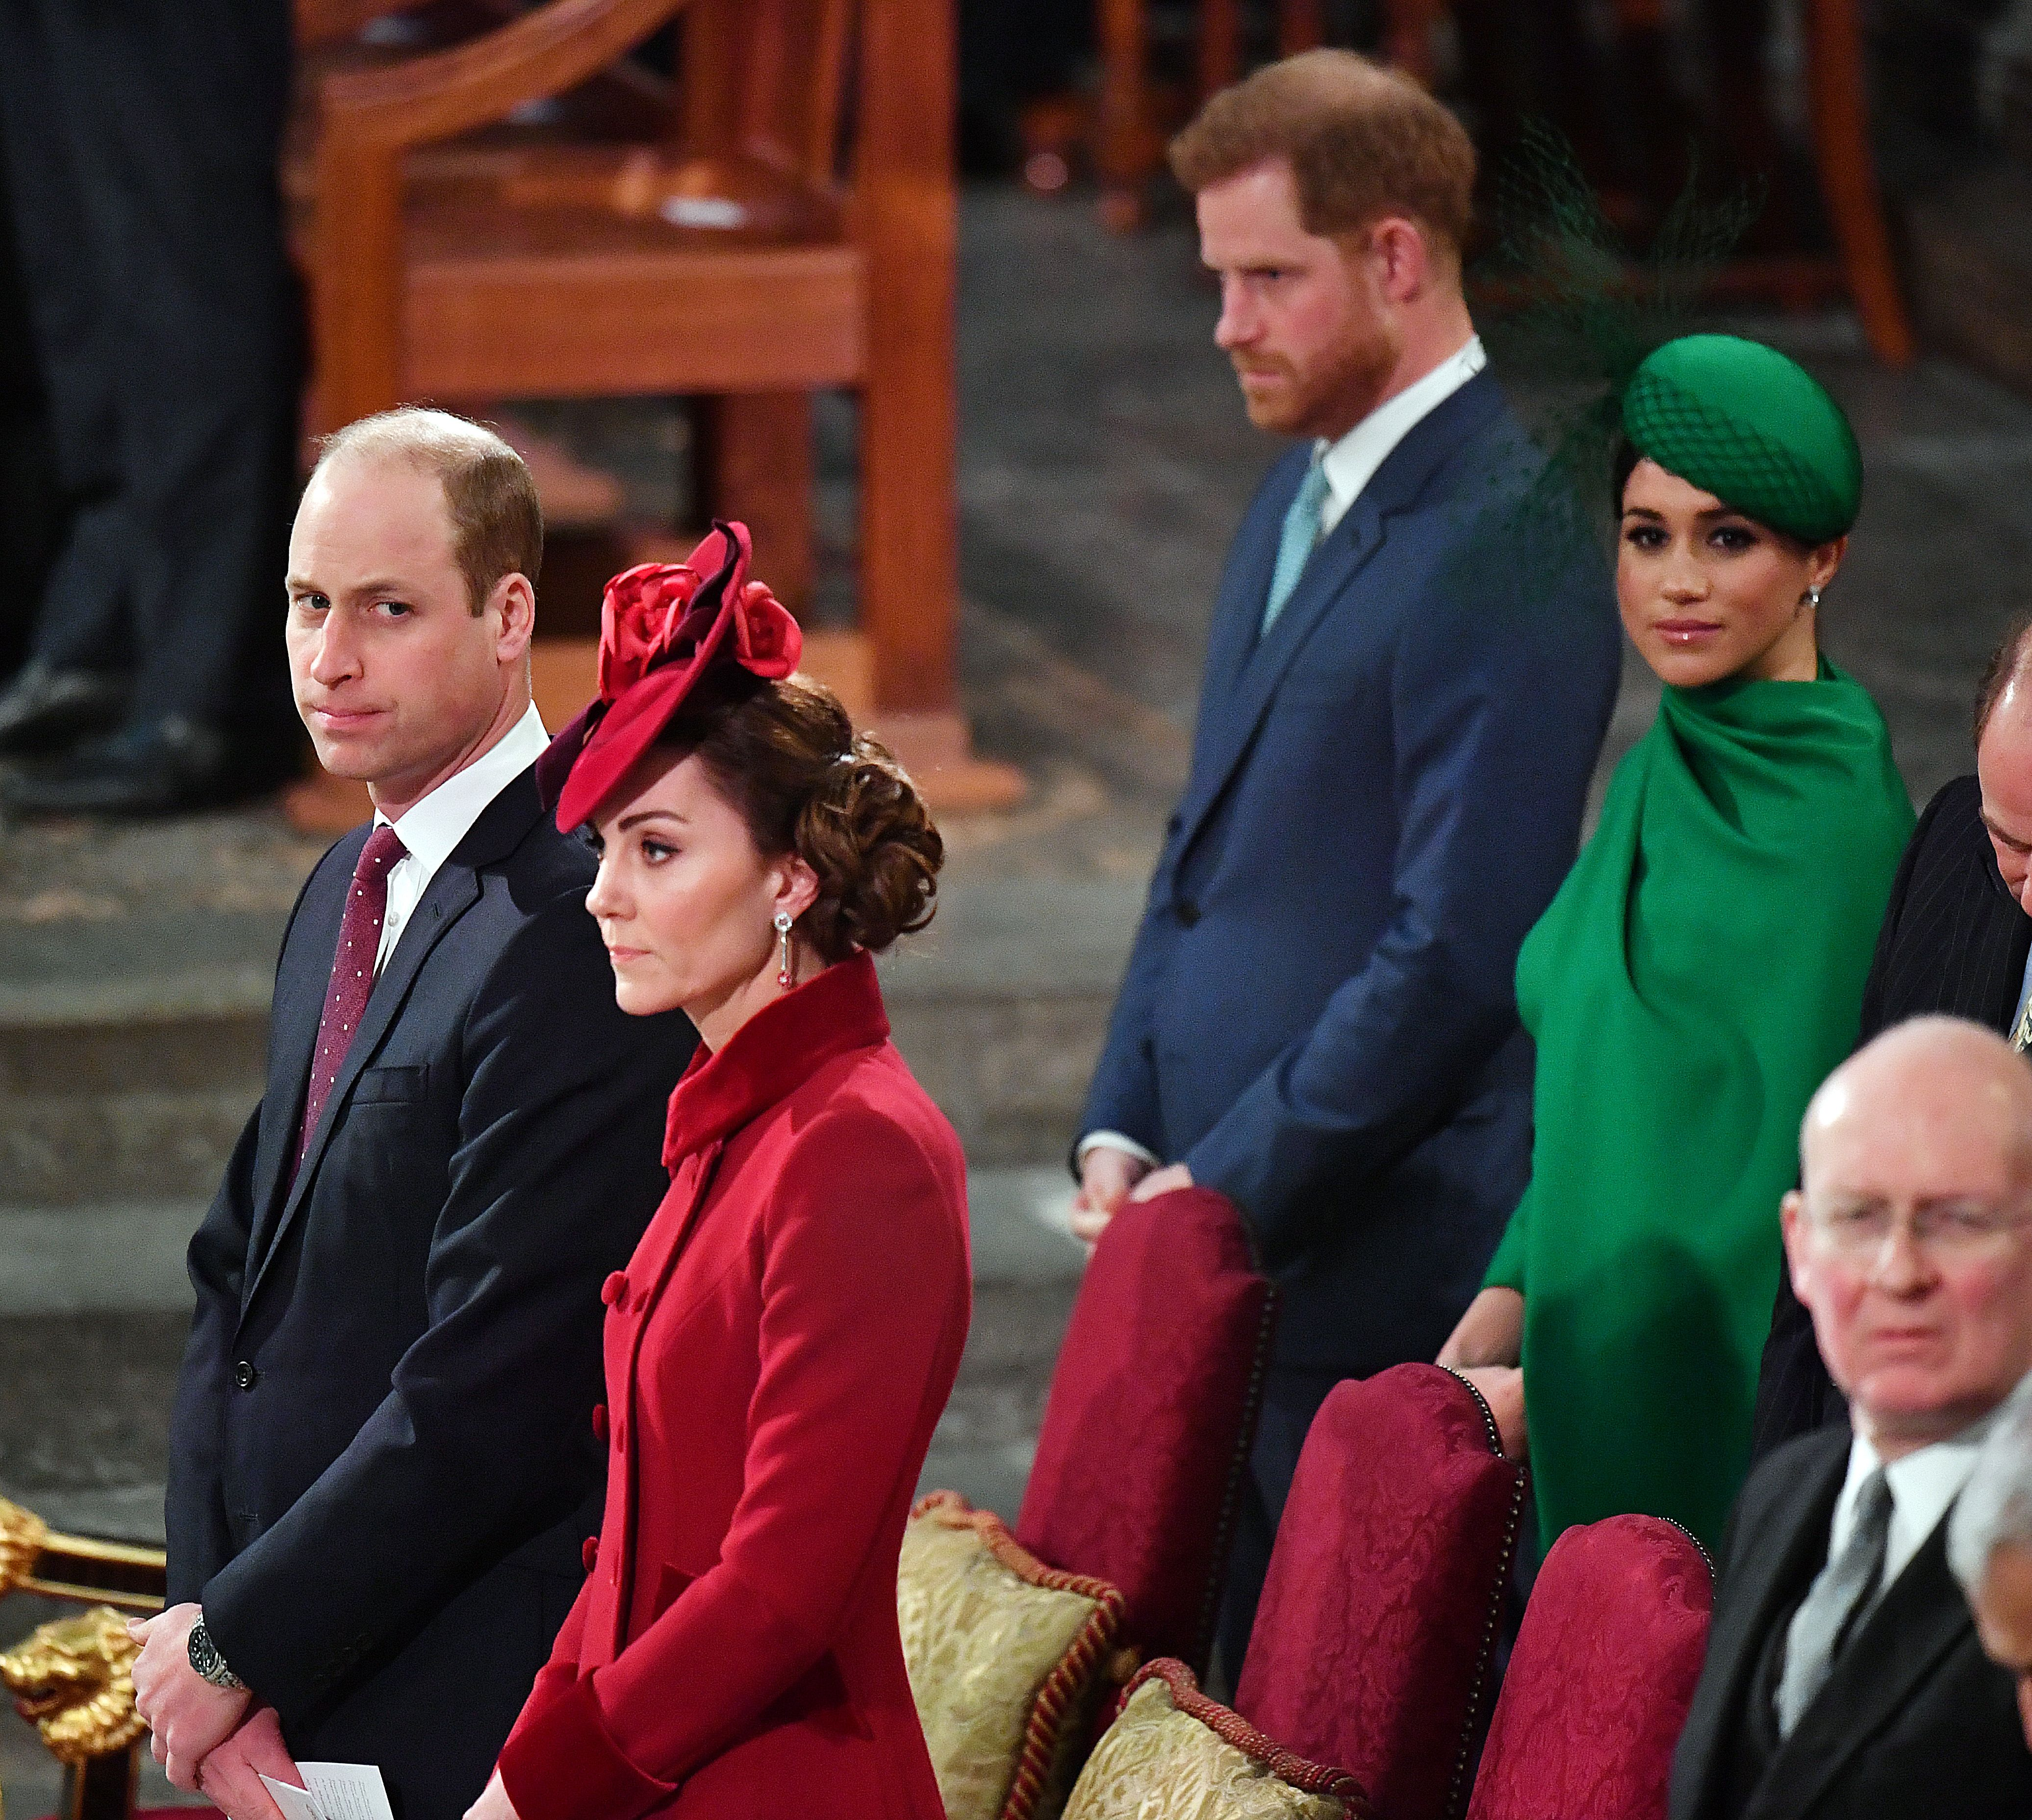 The Cambridges and the Sussexes during the Commonwealth Service at Westminster Abbey